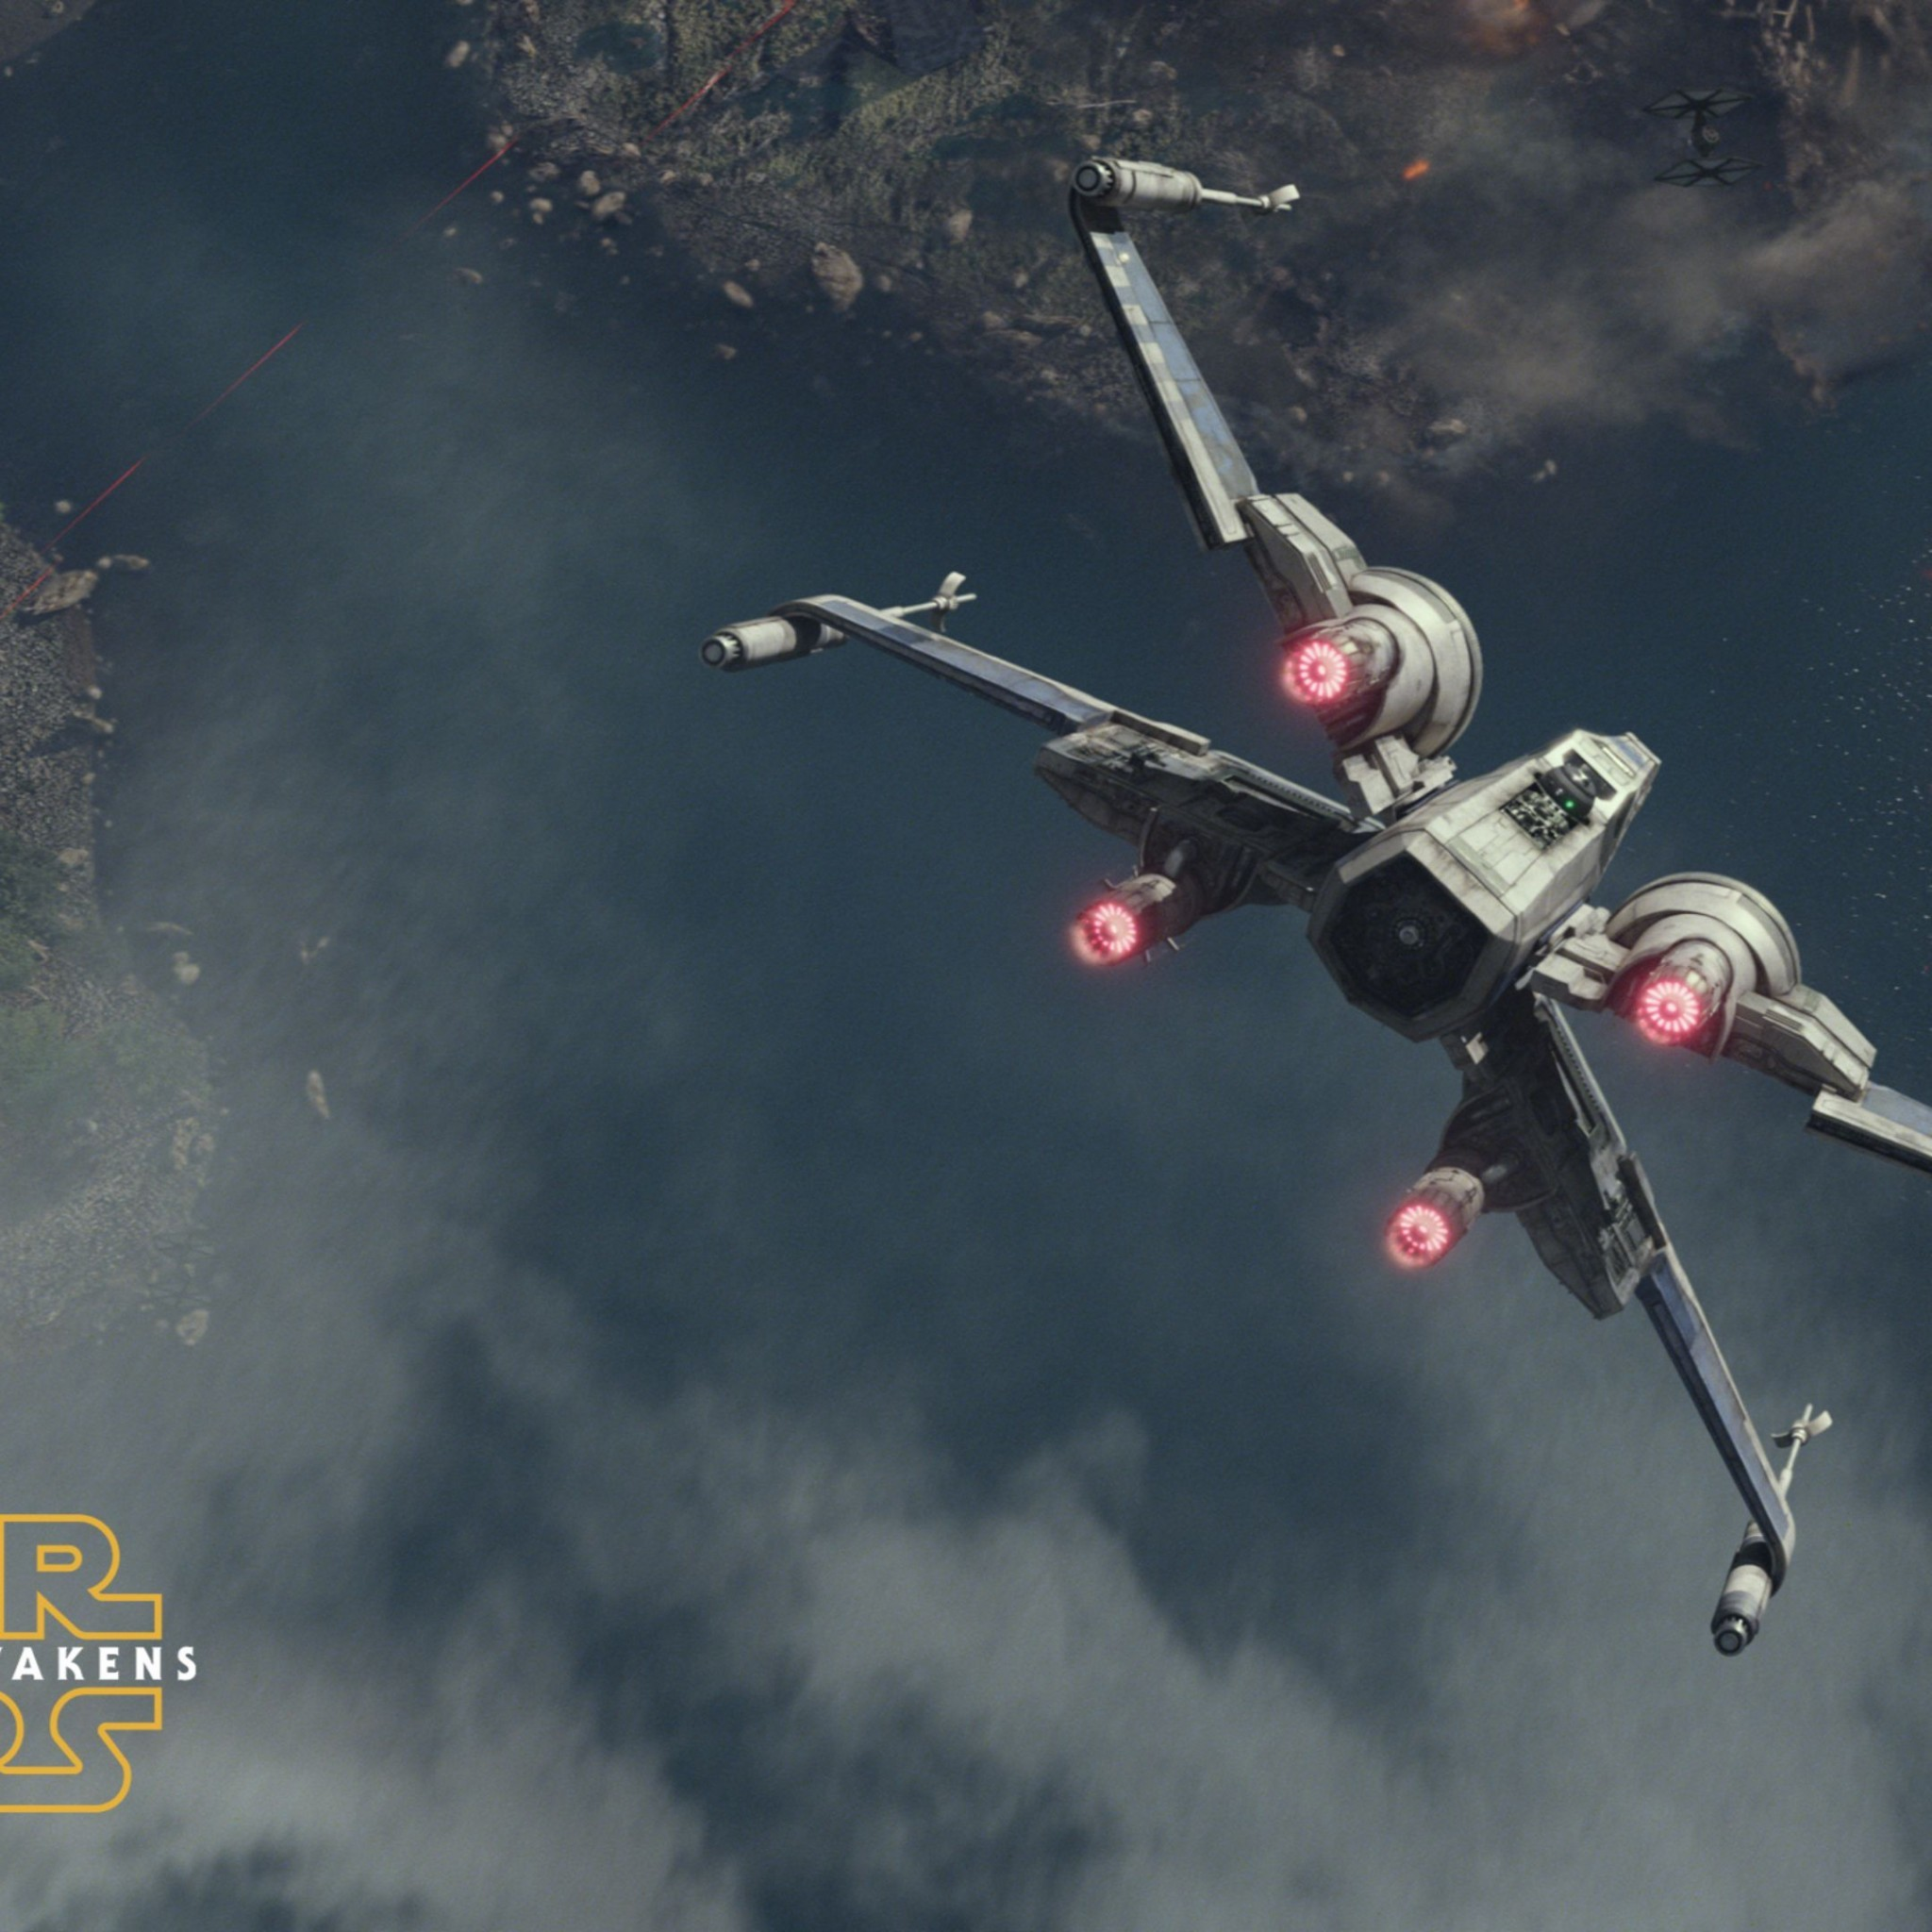 Best X-Wing Fighter Star Wars The Force Awakens 4K Wallpaper | Best Games  Wallpapers | Pinterest | Wibbly wobbly timey wimey and Starwars